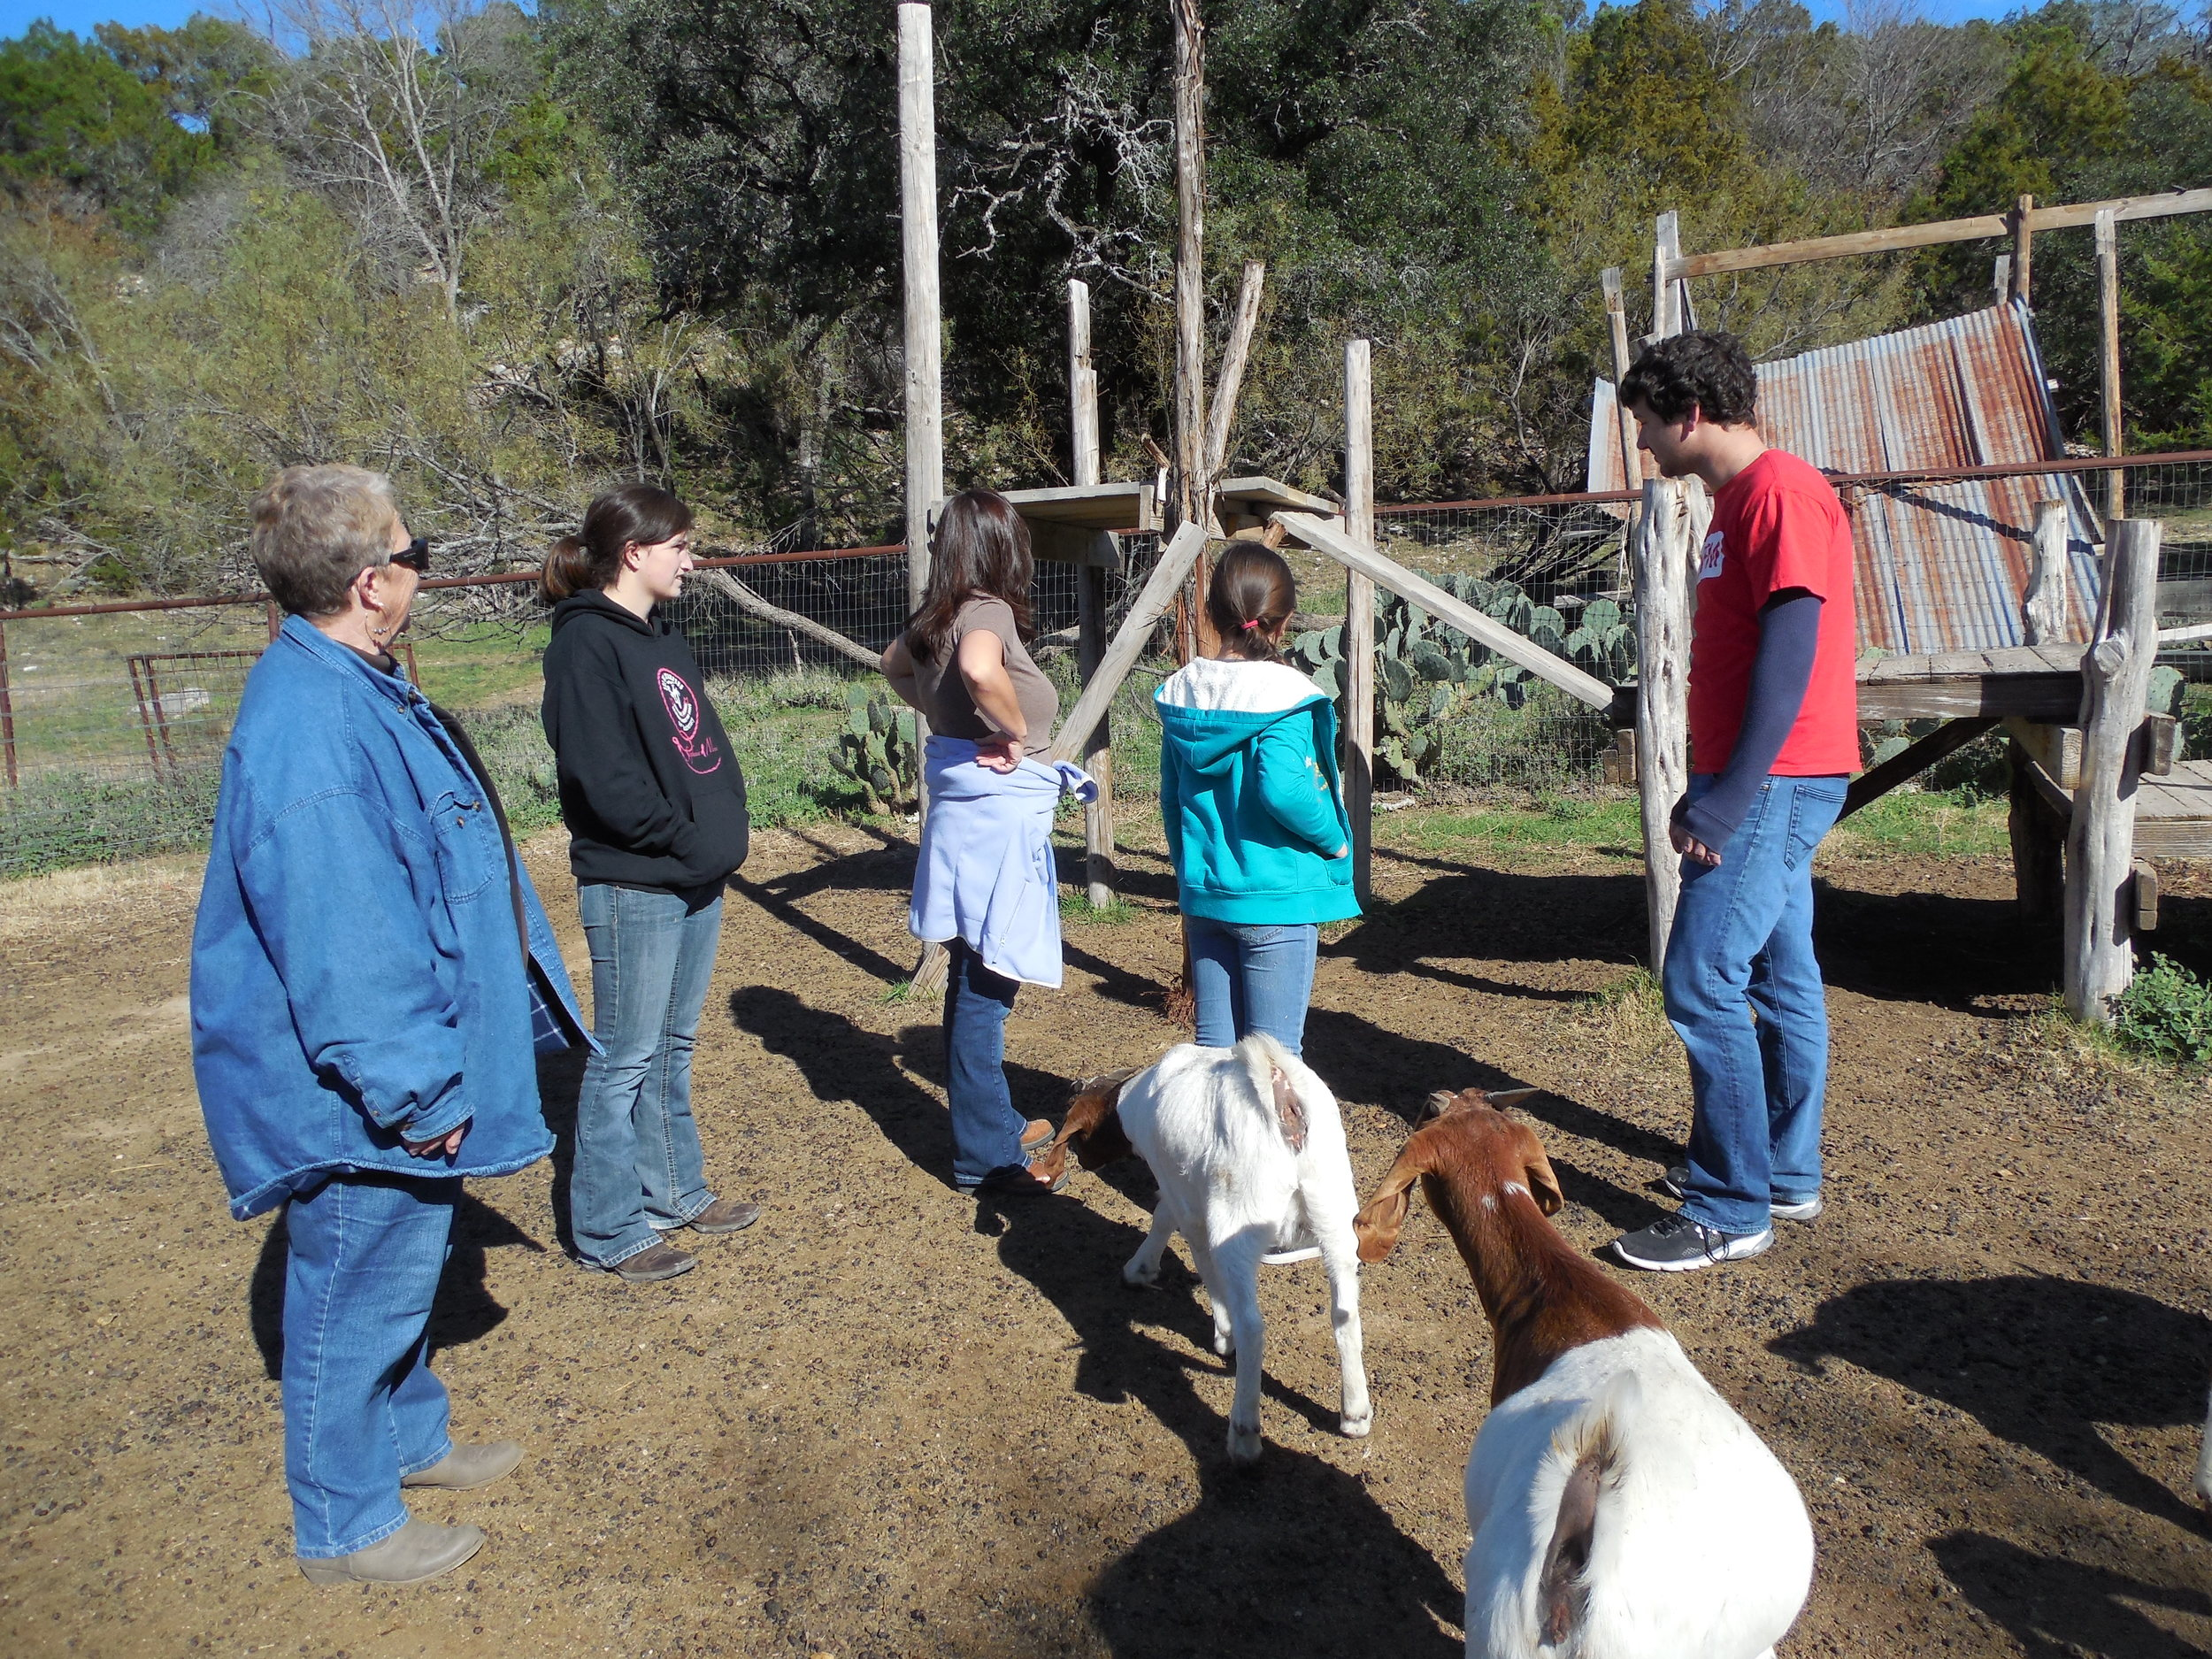 Our guests admired the play area that Jake and Jess are building for the goats.